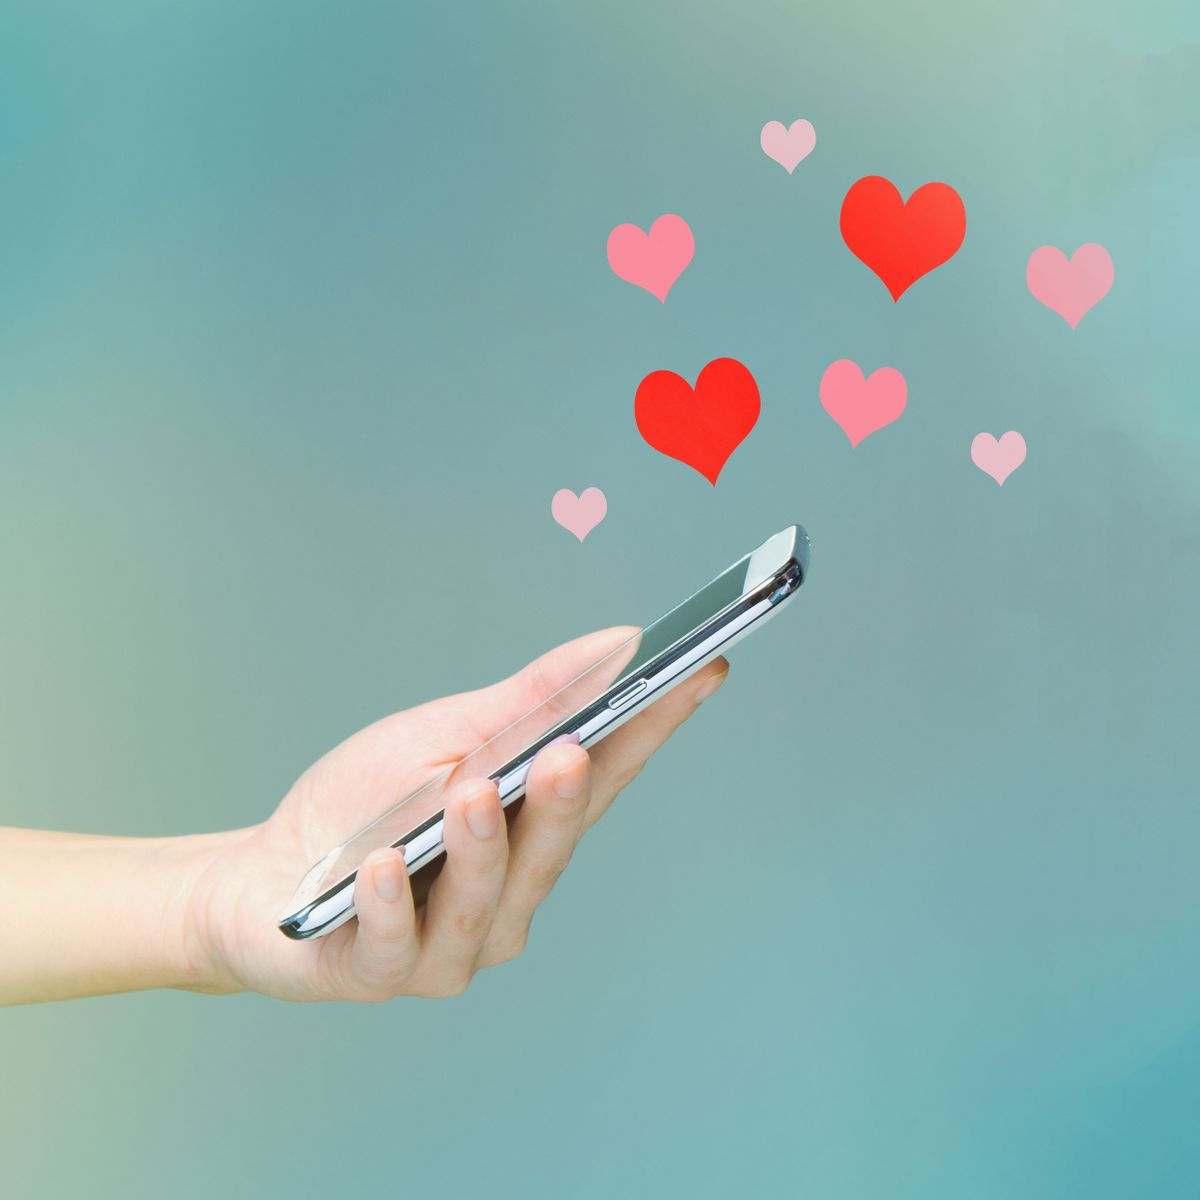 It's Complicated: The Best Place to Flirt Is Instagram DM